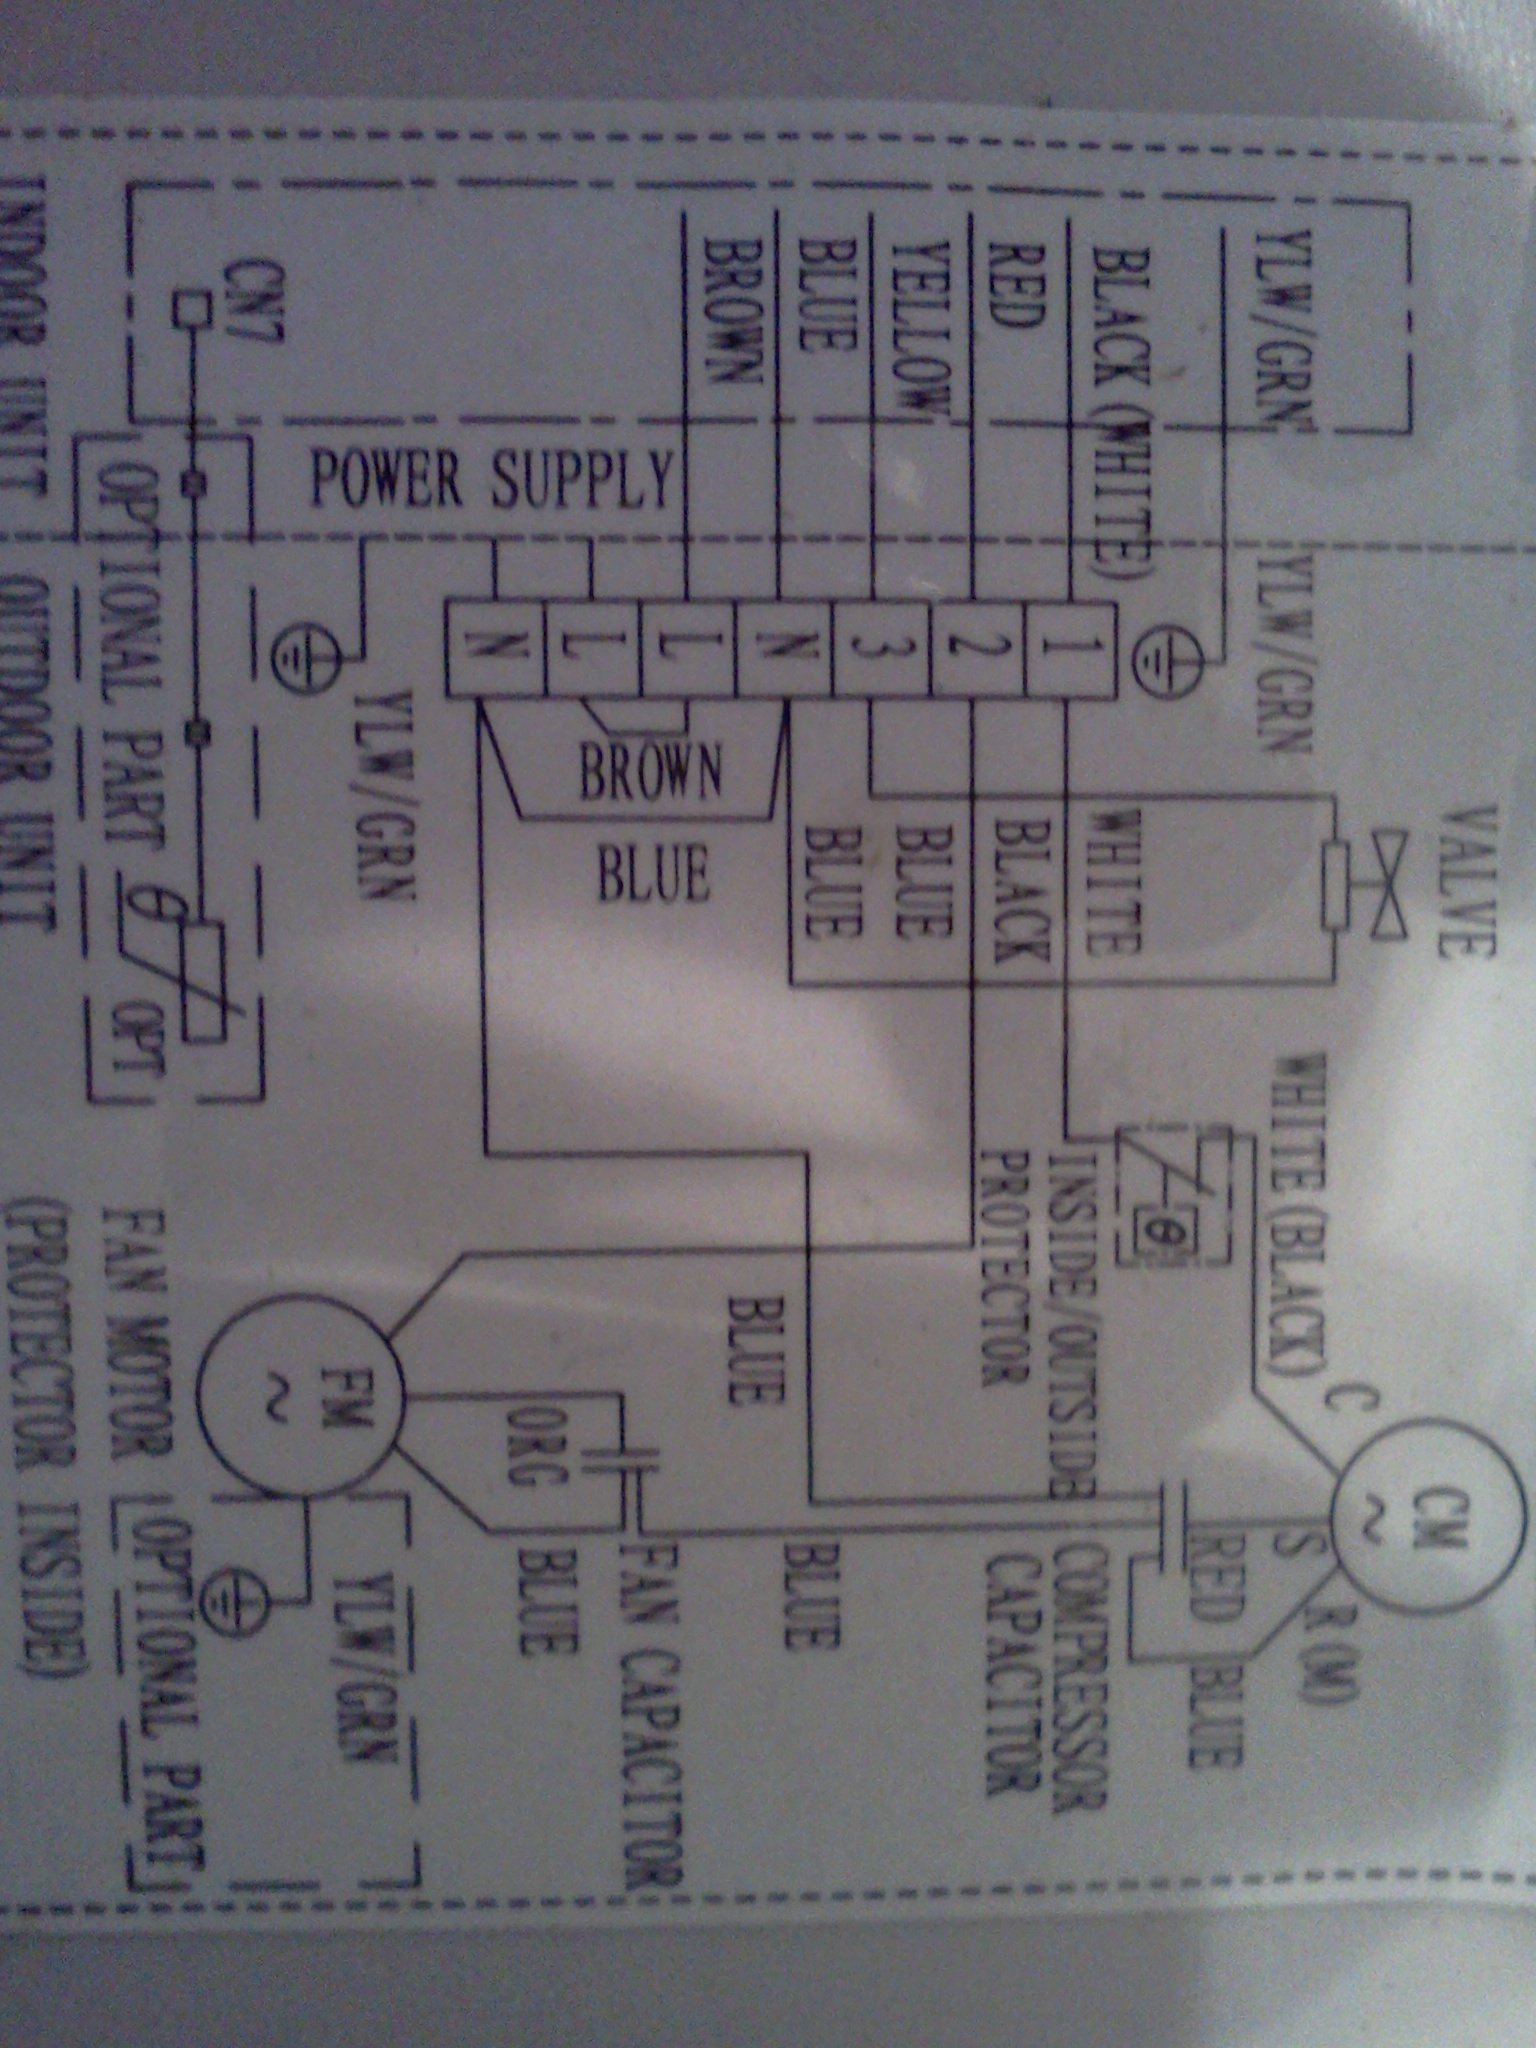 Wiring Diagram For Aircon : I have installed a ramsond split air conditioner with